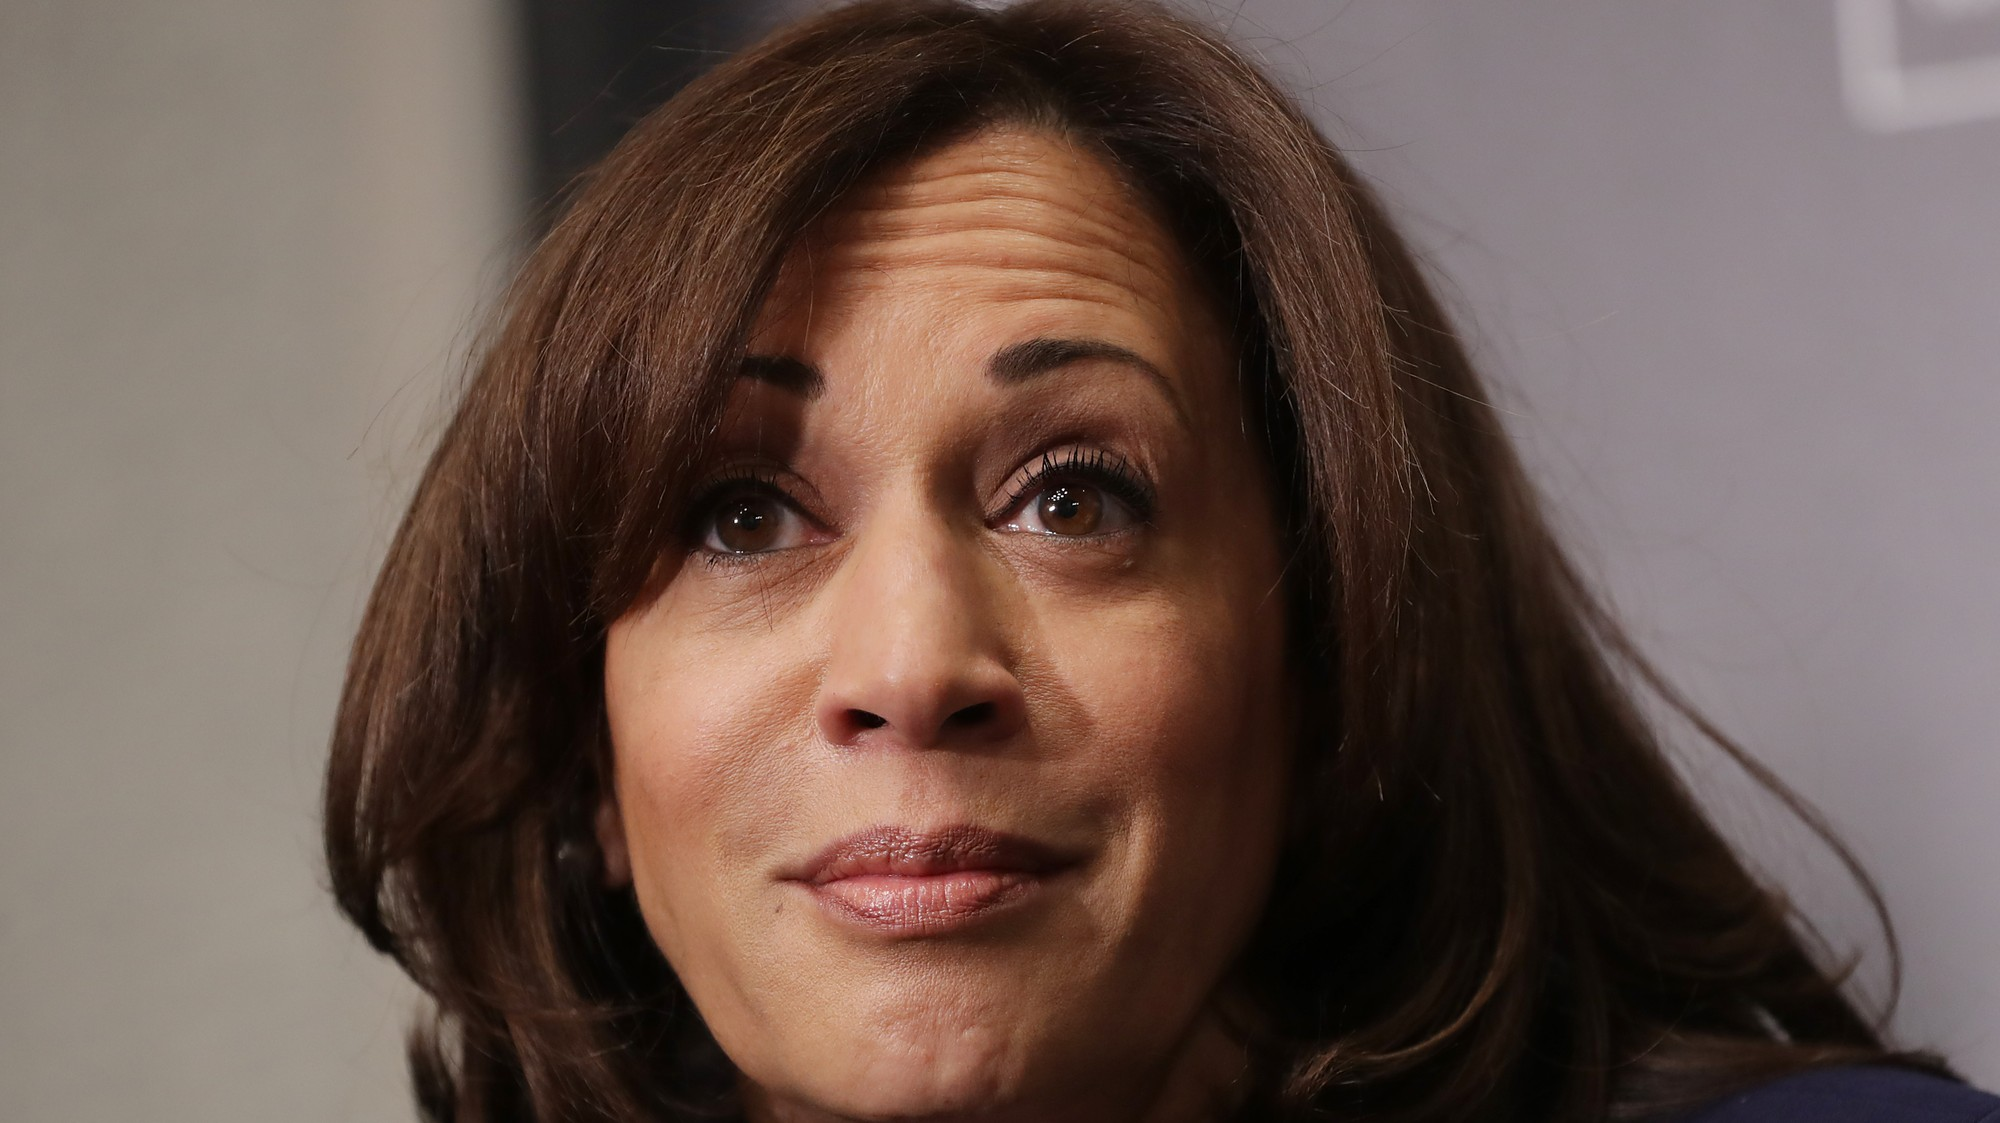 VICE – The Kamala Harris 'Reefergate' Scandal Is the Dumbest Story of the Year